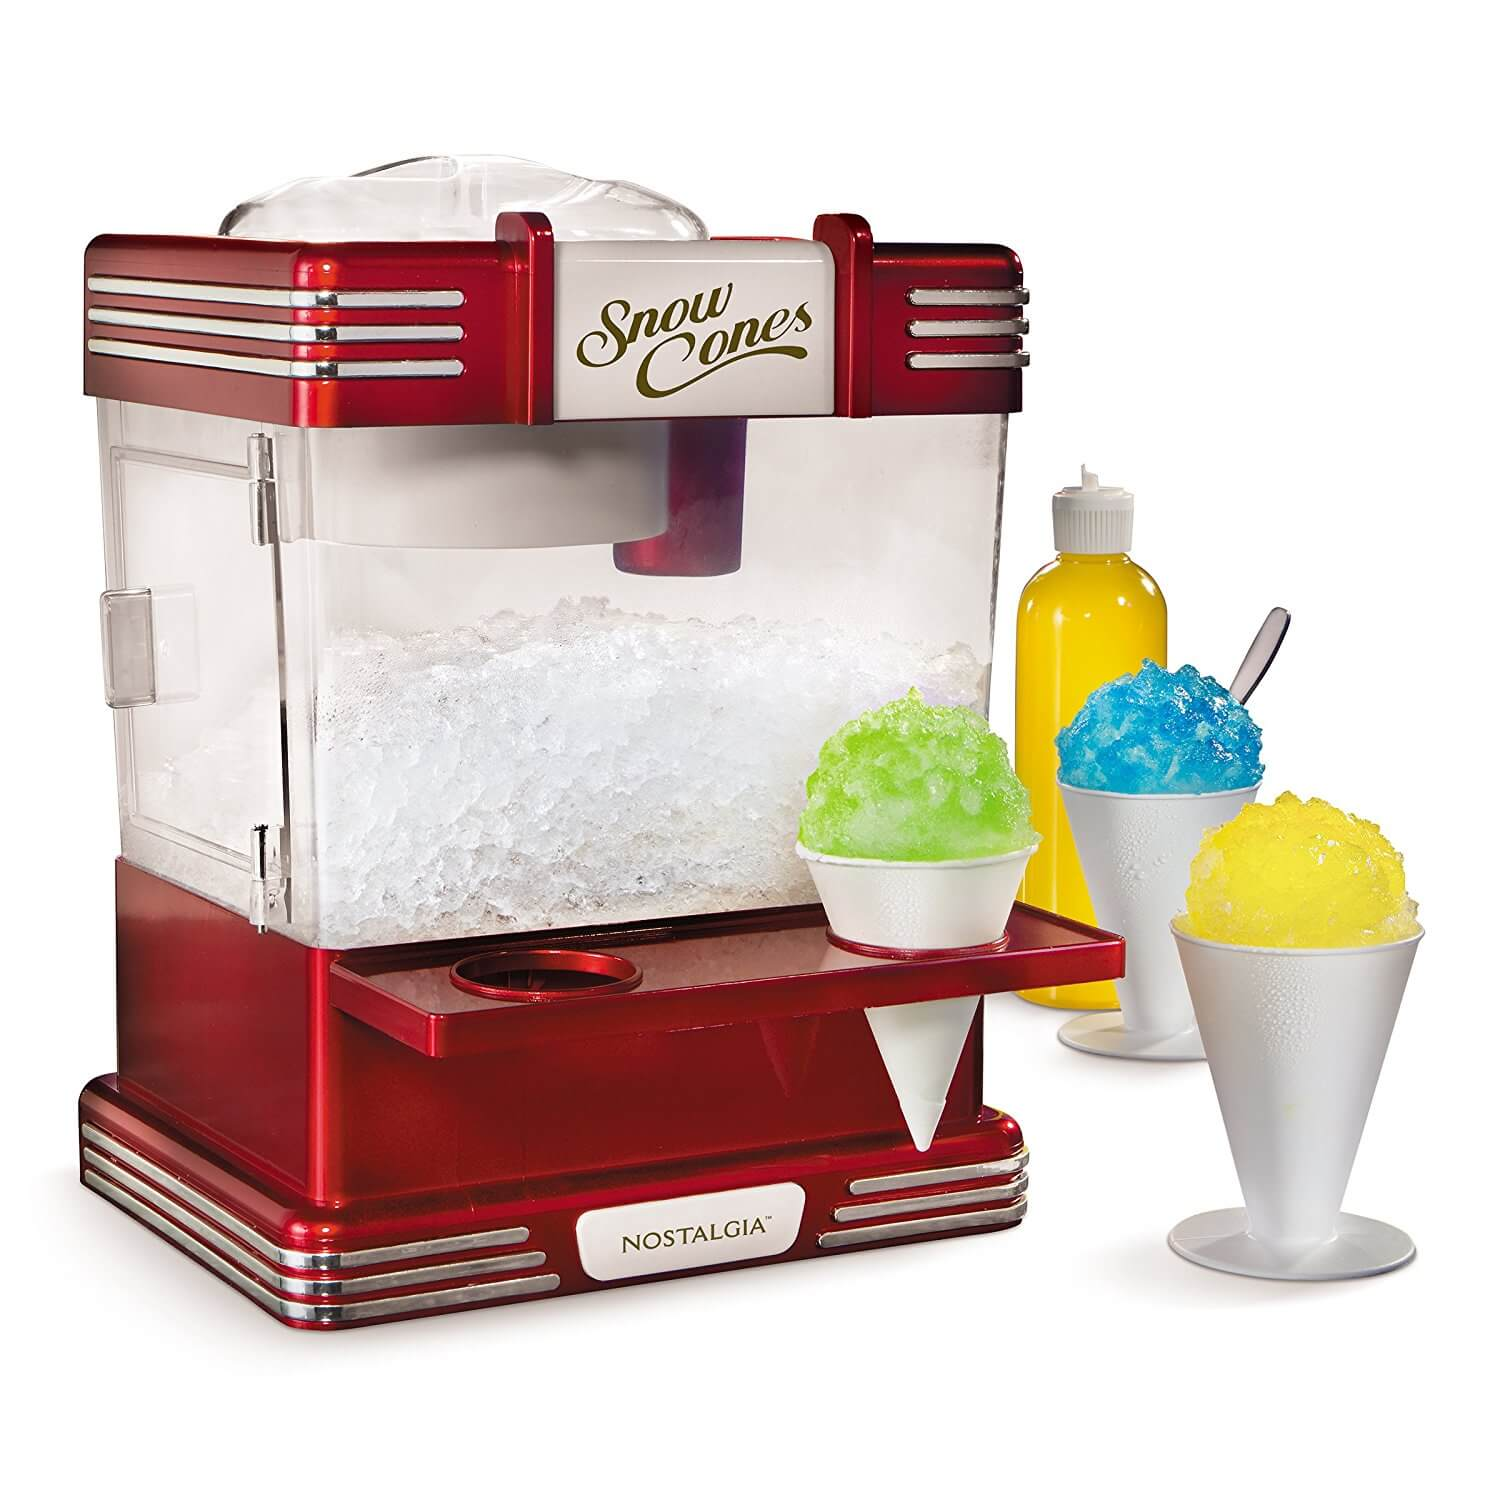 8.	Nostalgia RSM602 Retro Snow Cone Maker